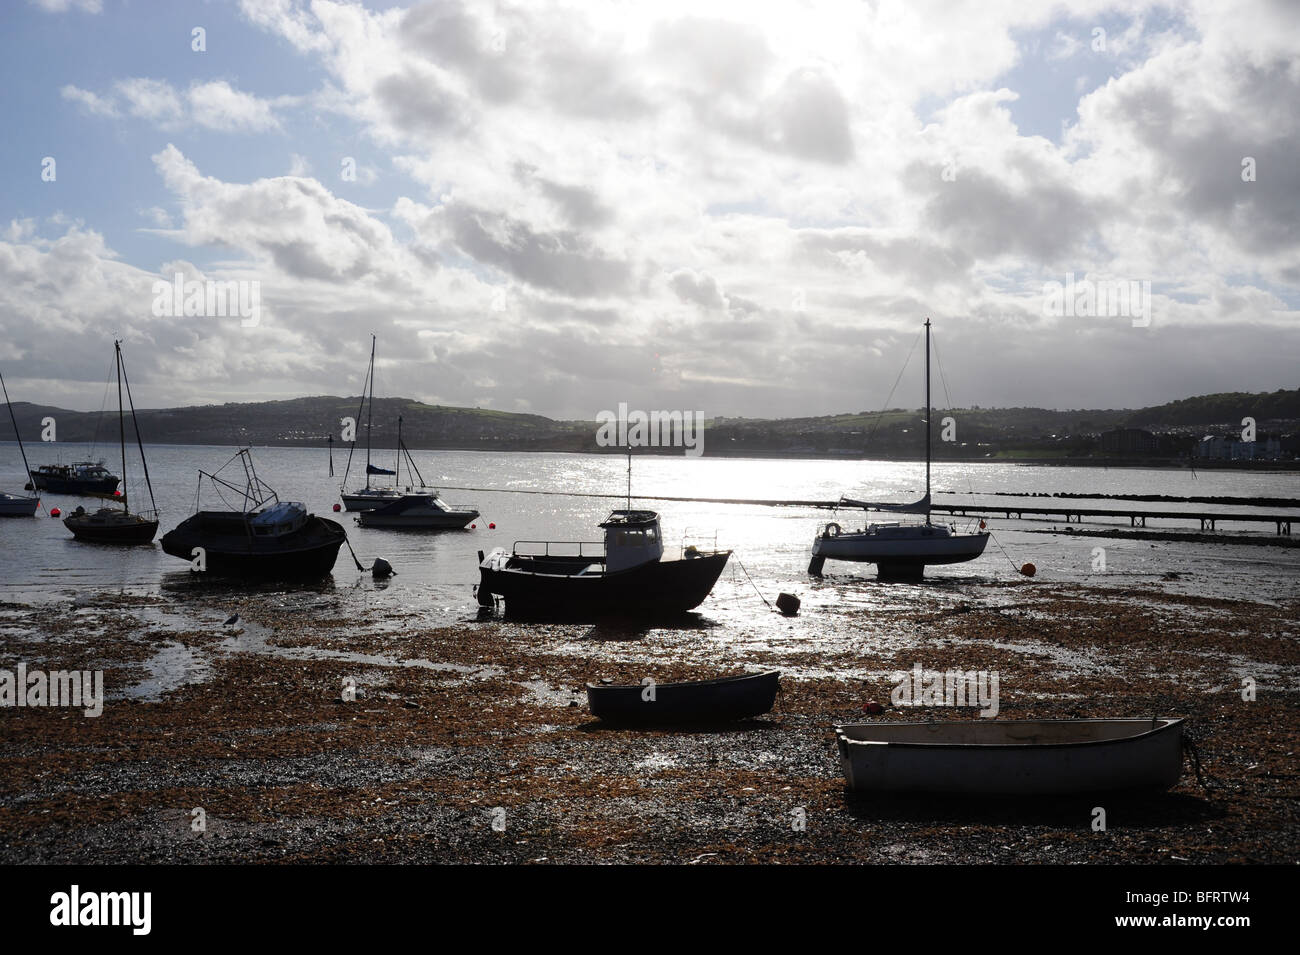 Views across the bay at Rhos on sea - Stock Image